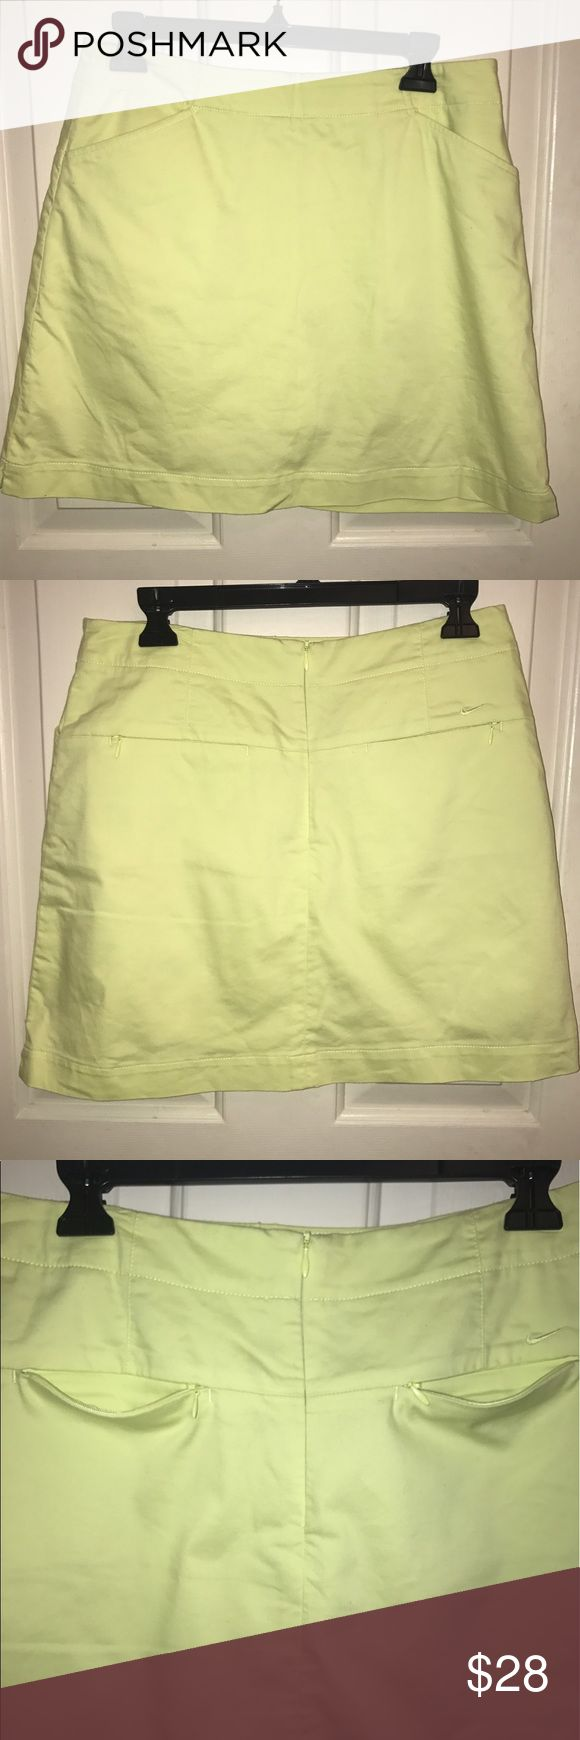 Euc💜NIKE 💜Chartreuse colored Golf Dry Fit Skort EUC 💜NIKE GOLF 💜Chartreuse colored Dry Fit Skort. Size- Medium. 2 Front pockets. Two back pockets with zipper closures. Hidden Back zipper. Nike Shorts Skorts